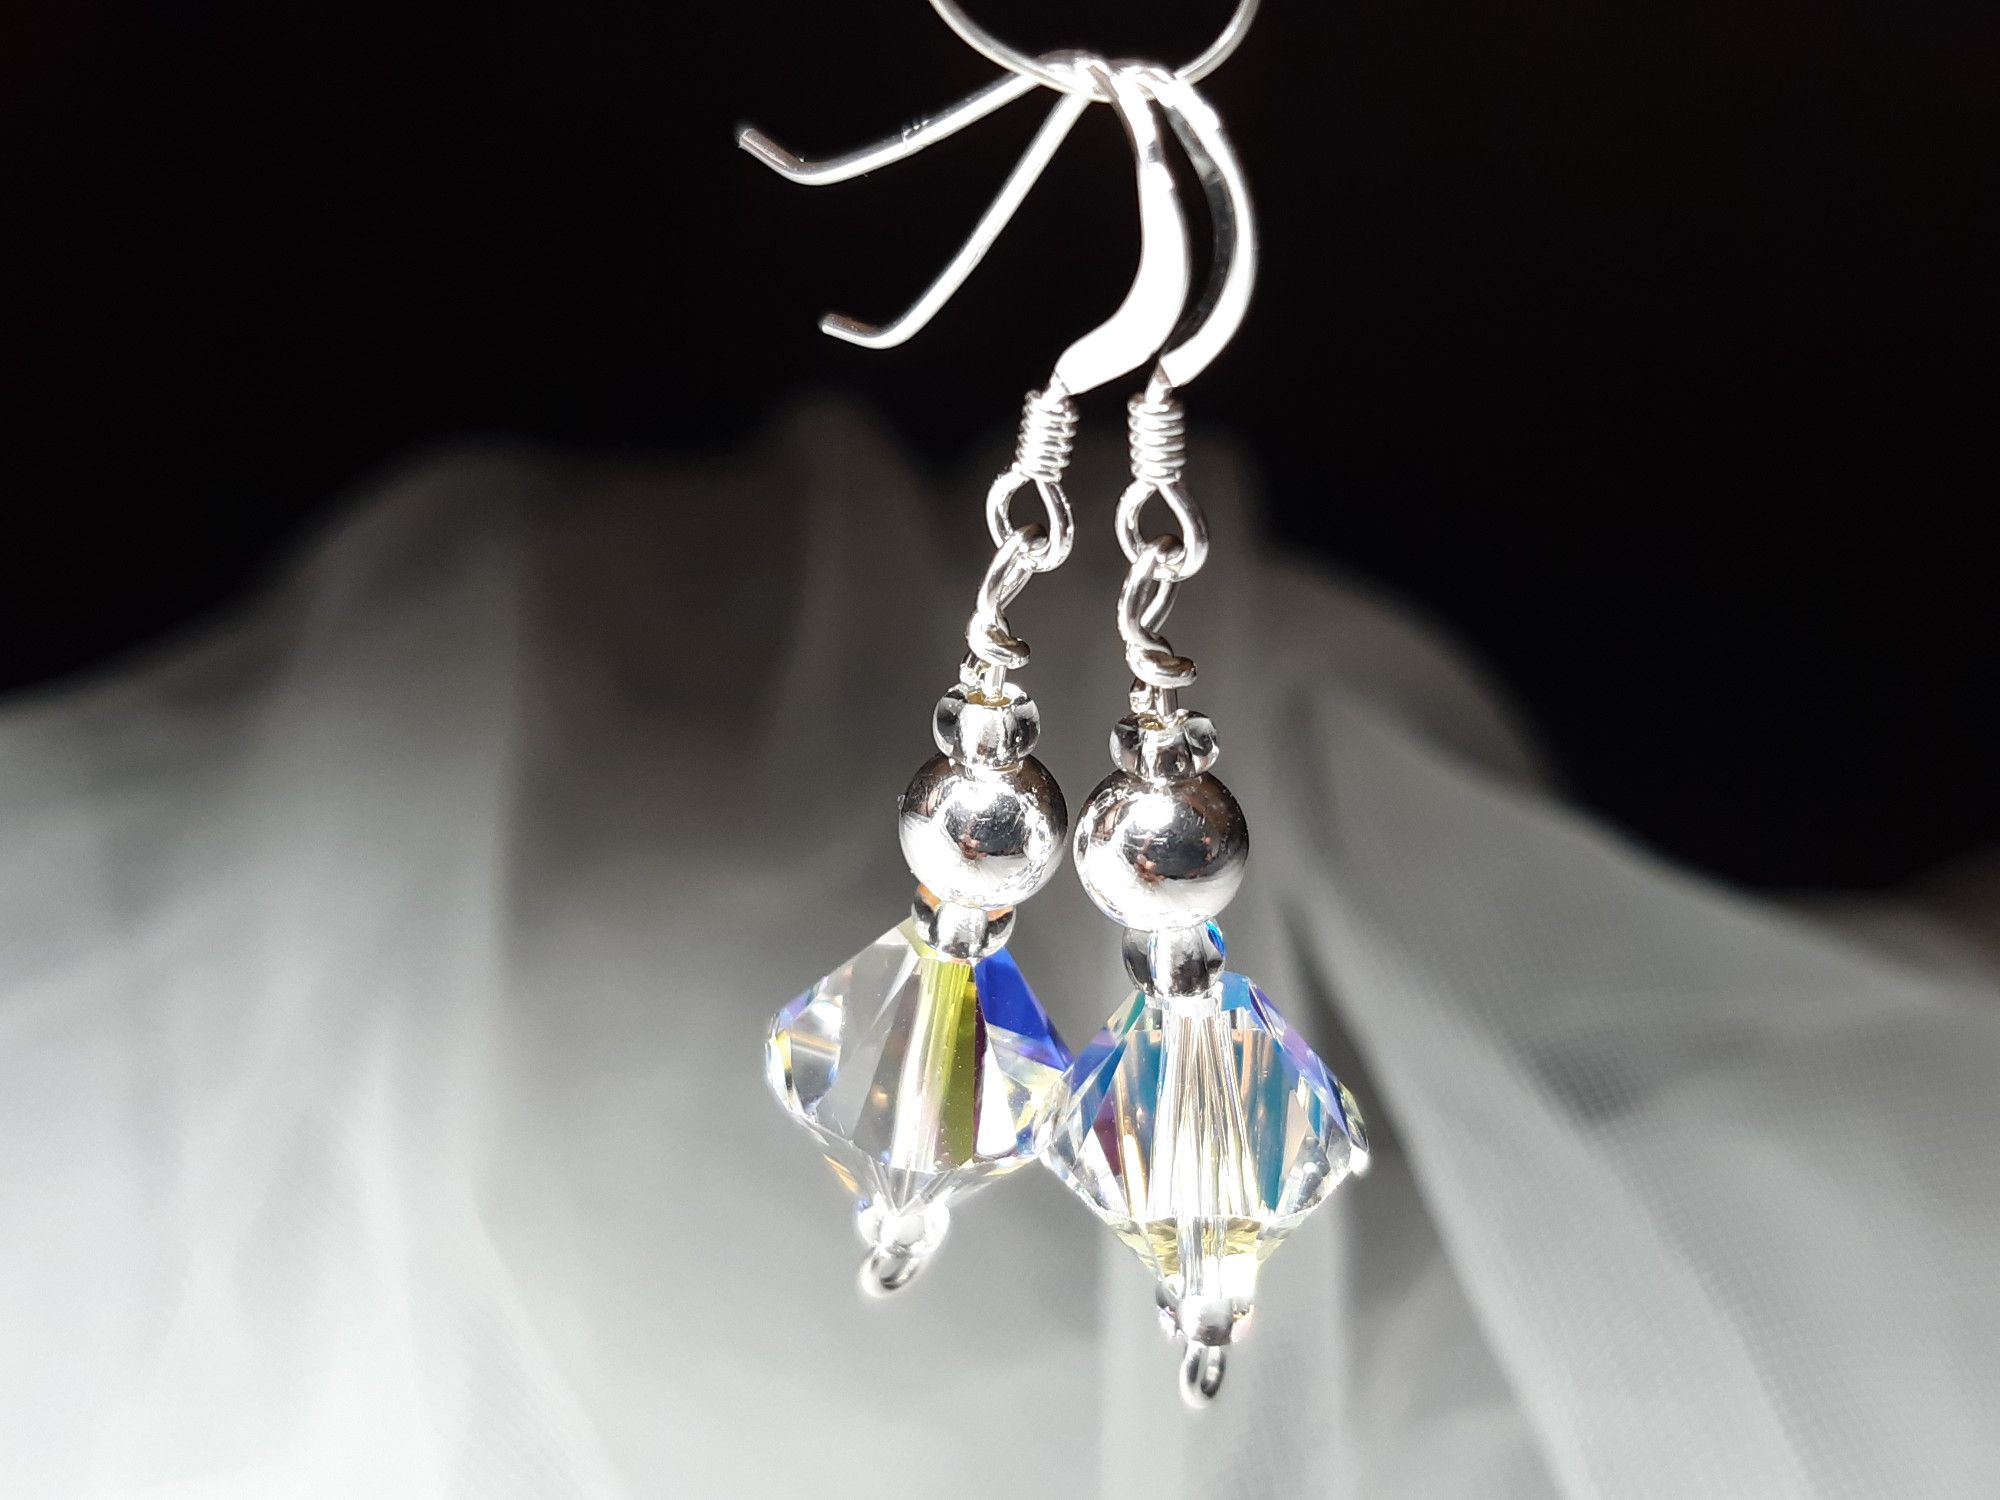 Occasion-bridal-wedding-swarovski crystal+sterling silver earrings-3.jpg